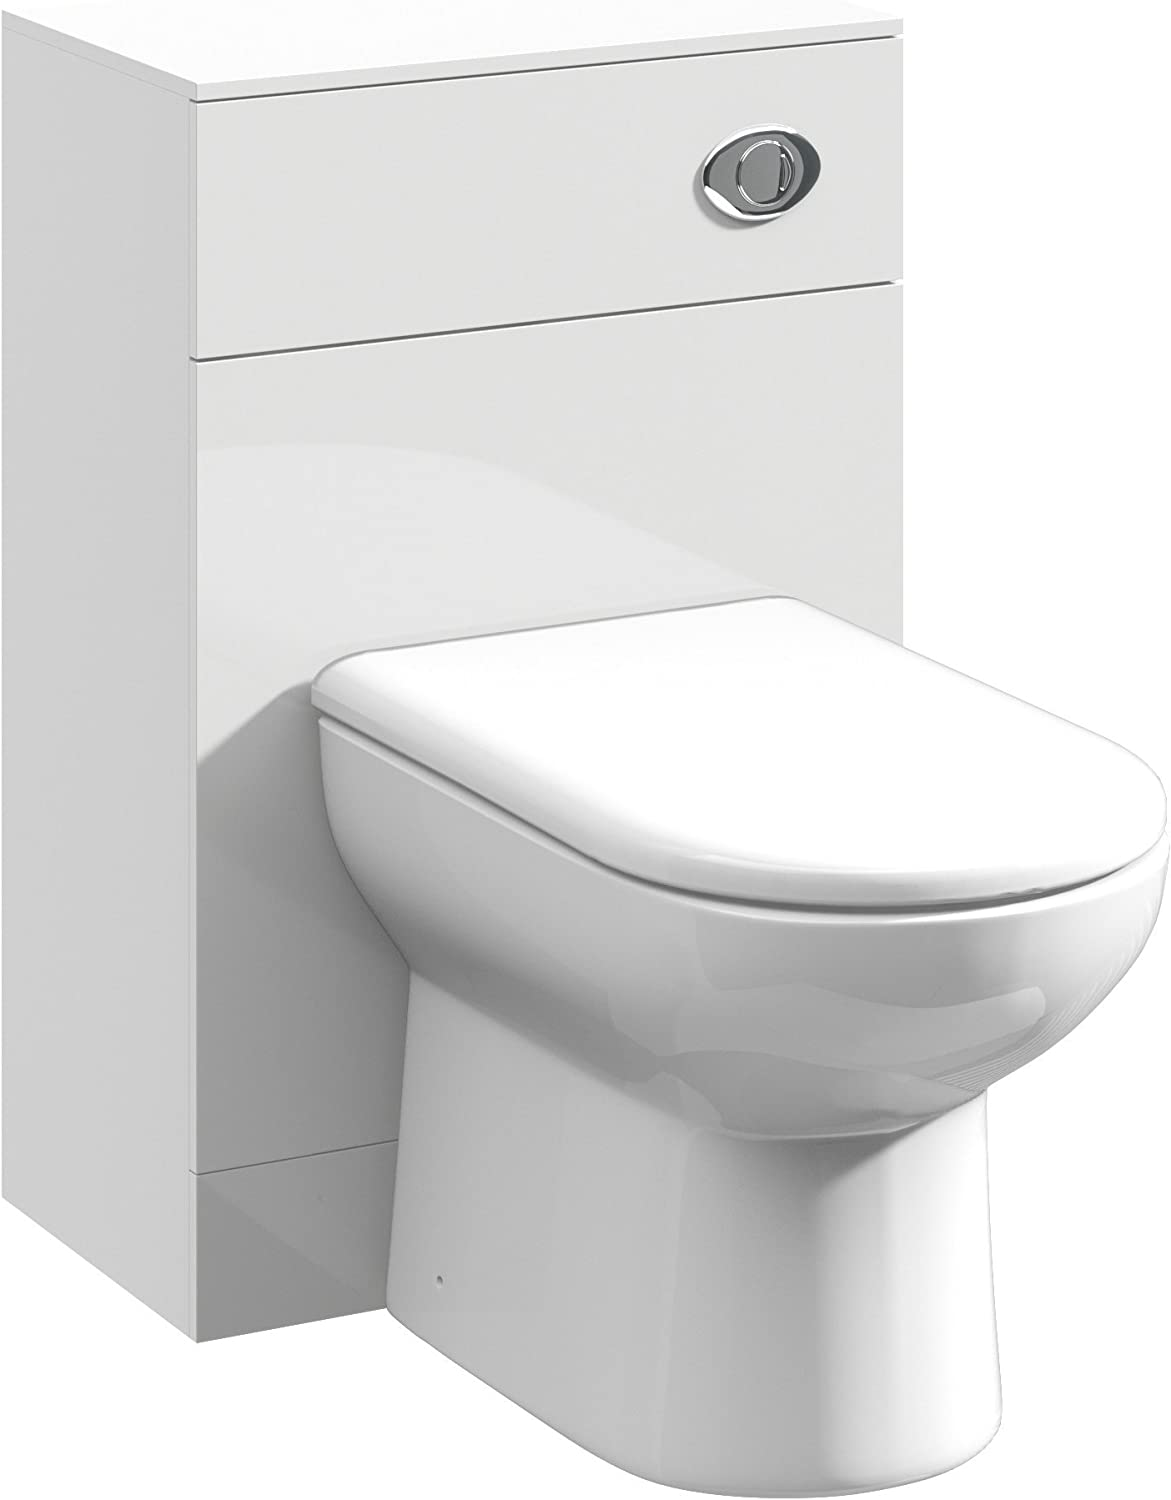 500 x 300mm High White Gloss WC Toilet Furniture Unit and Linton BTW Back to Wall Pan & Soft-Closing Seat